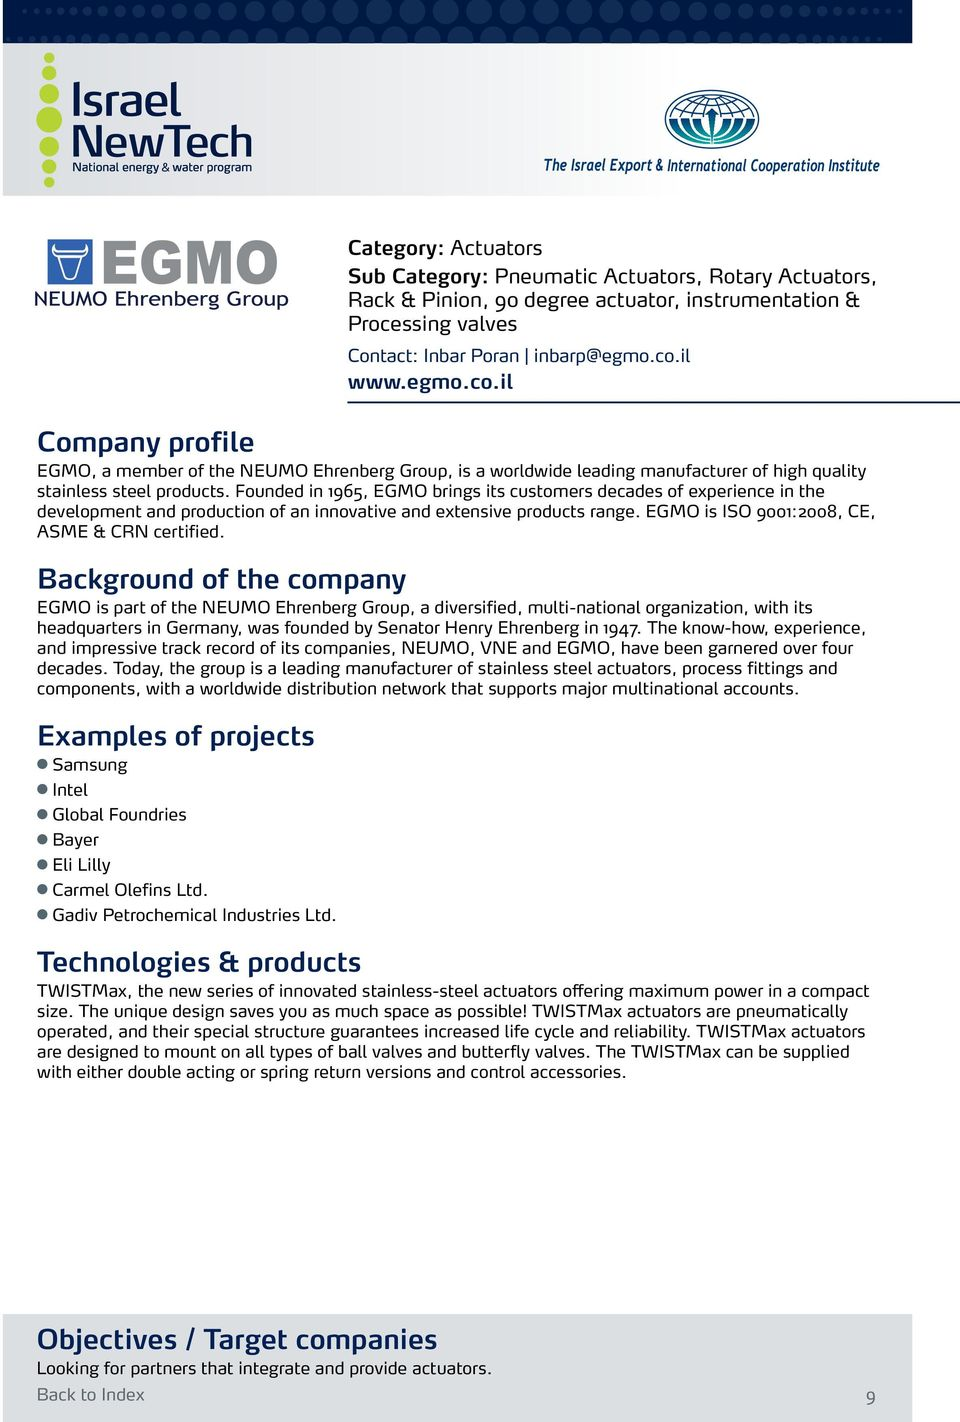 EGMO is part of the NEUMO Ehrenberg Group, a diversified, multi-national organization, with its headquarters in Germany, was founded by Senator Henry Ehrenberg in 1947.